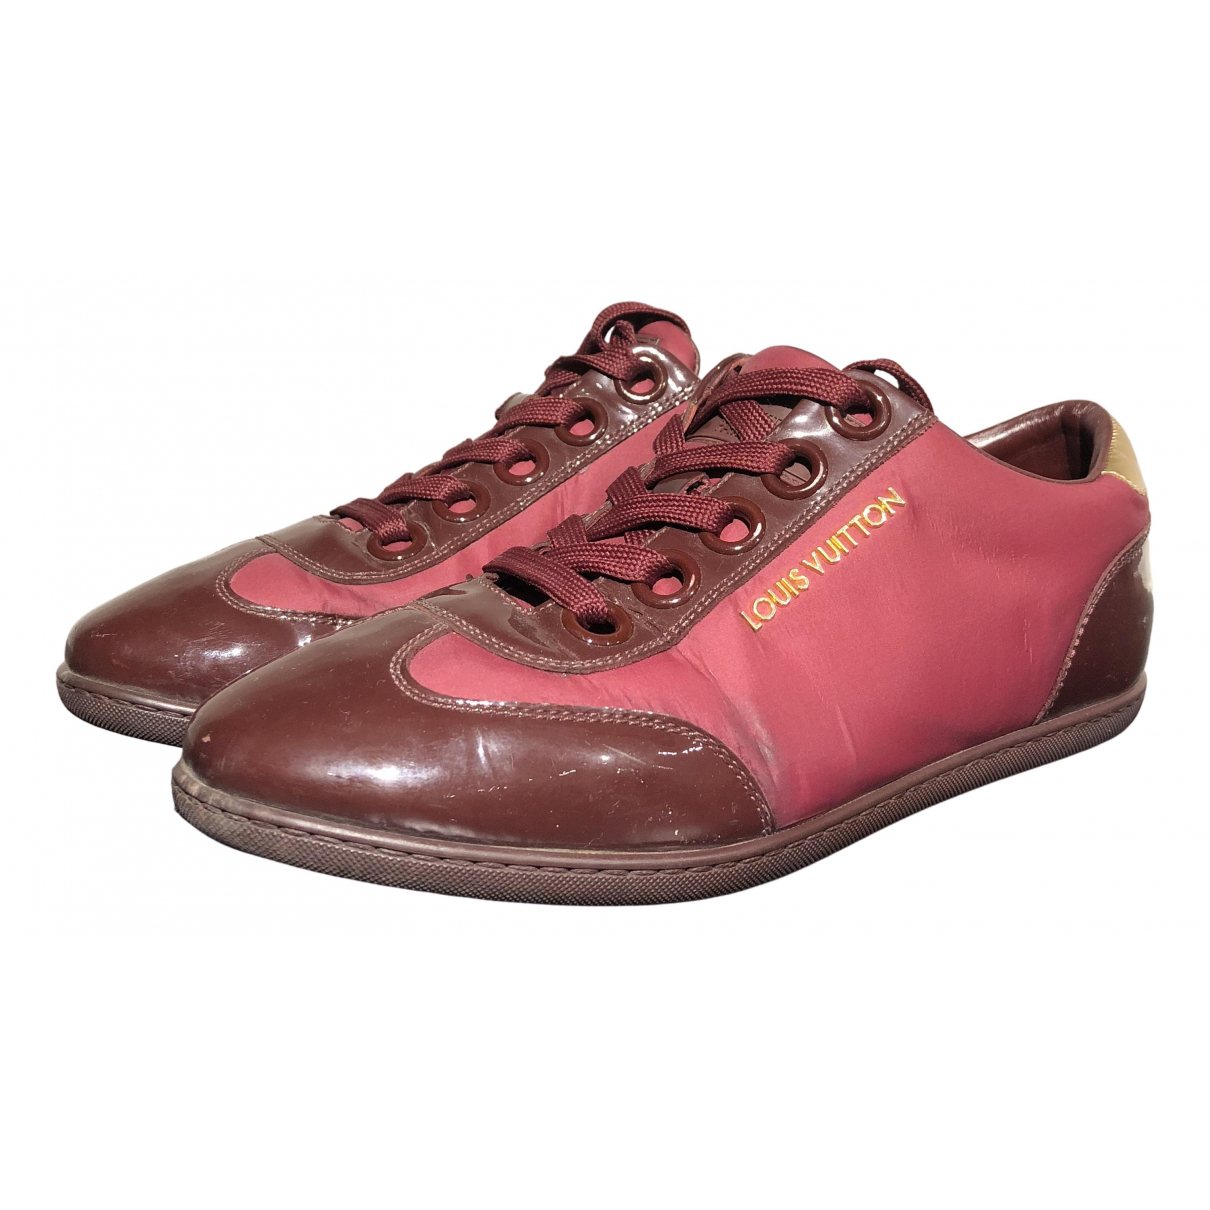 Louis Vuitton \N Burgundy Patent leather Trainers for Women 35.5 IT